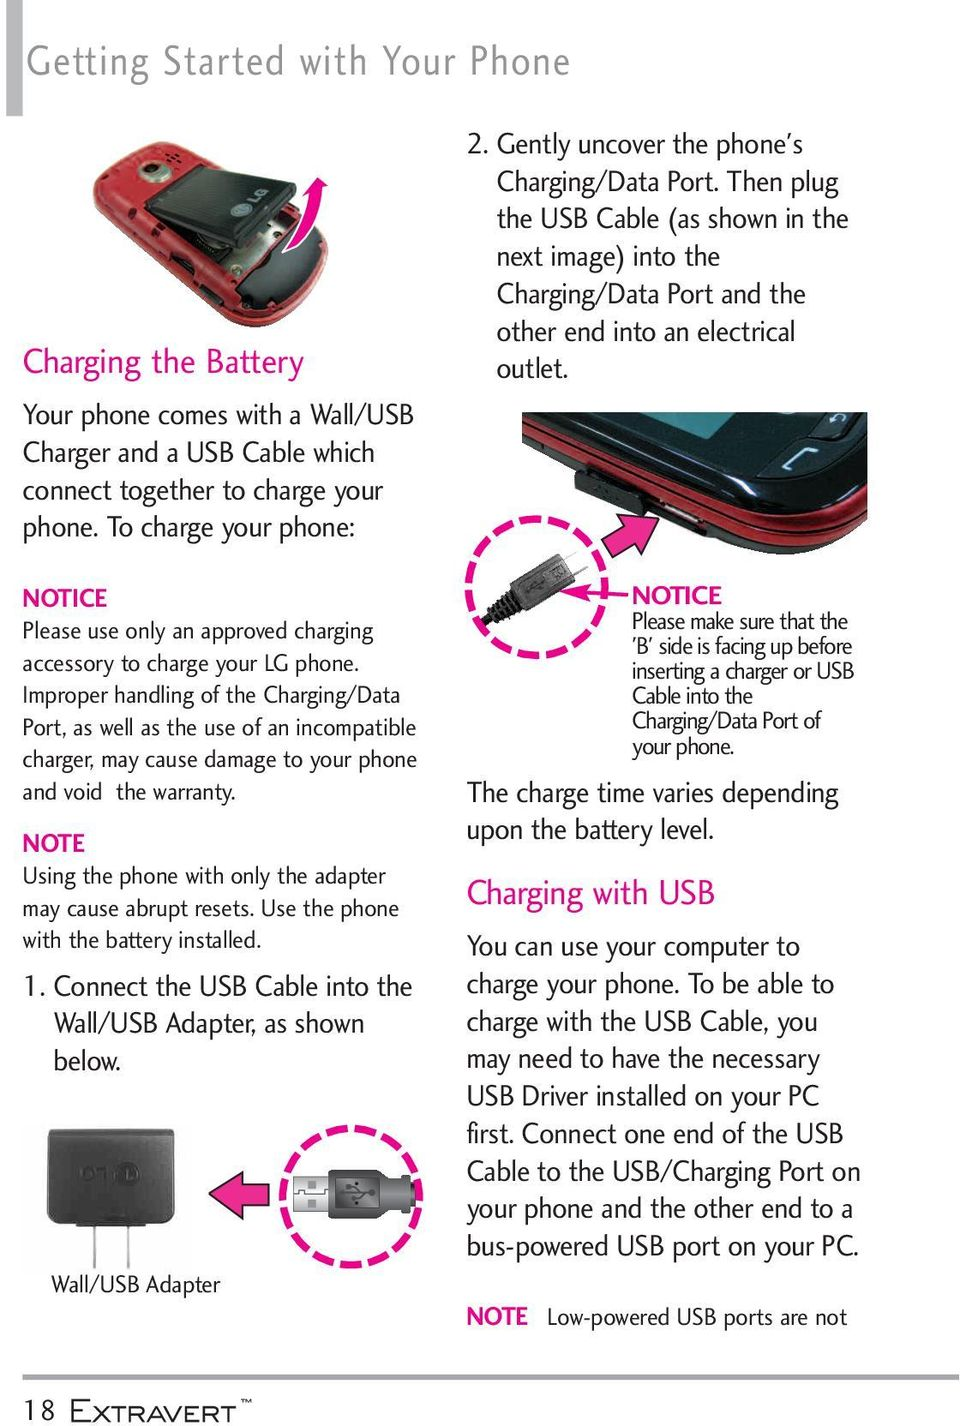 Improper handling of the Charging/Data Port, as well as the use of an incompatible charger, may cause damage to your phone and void the warranty.